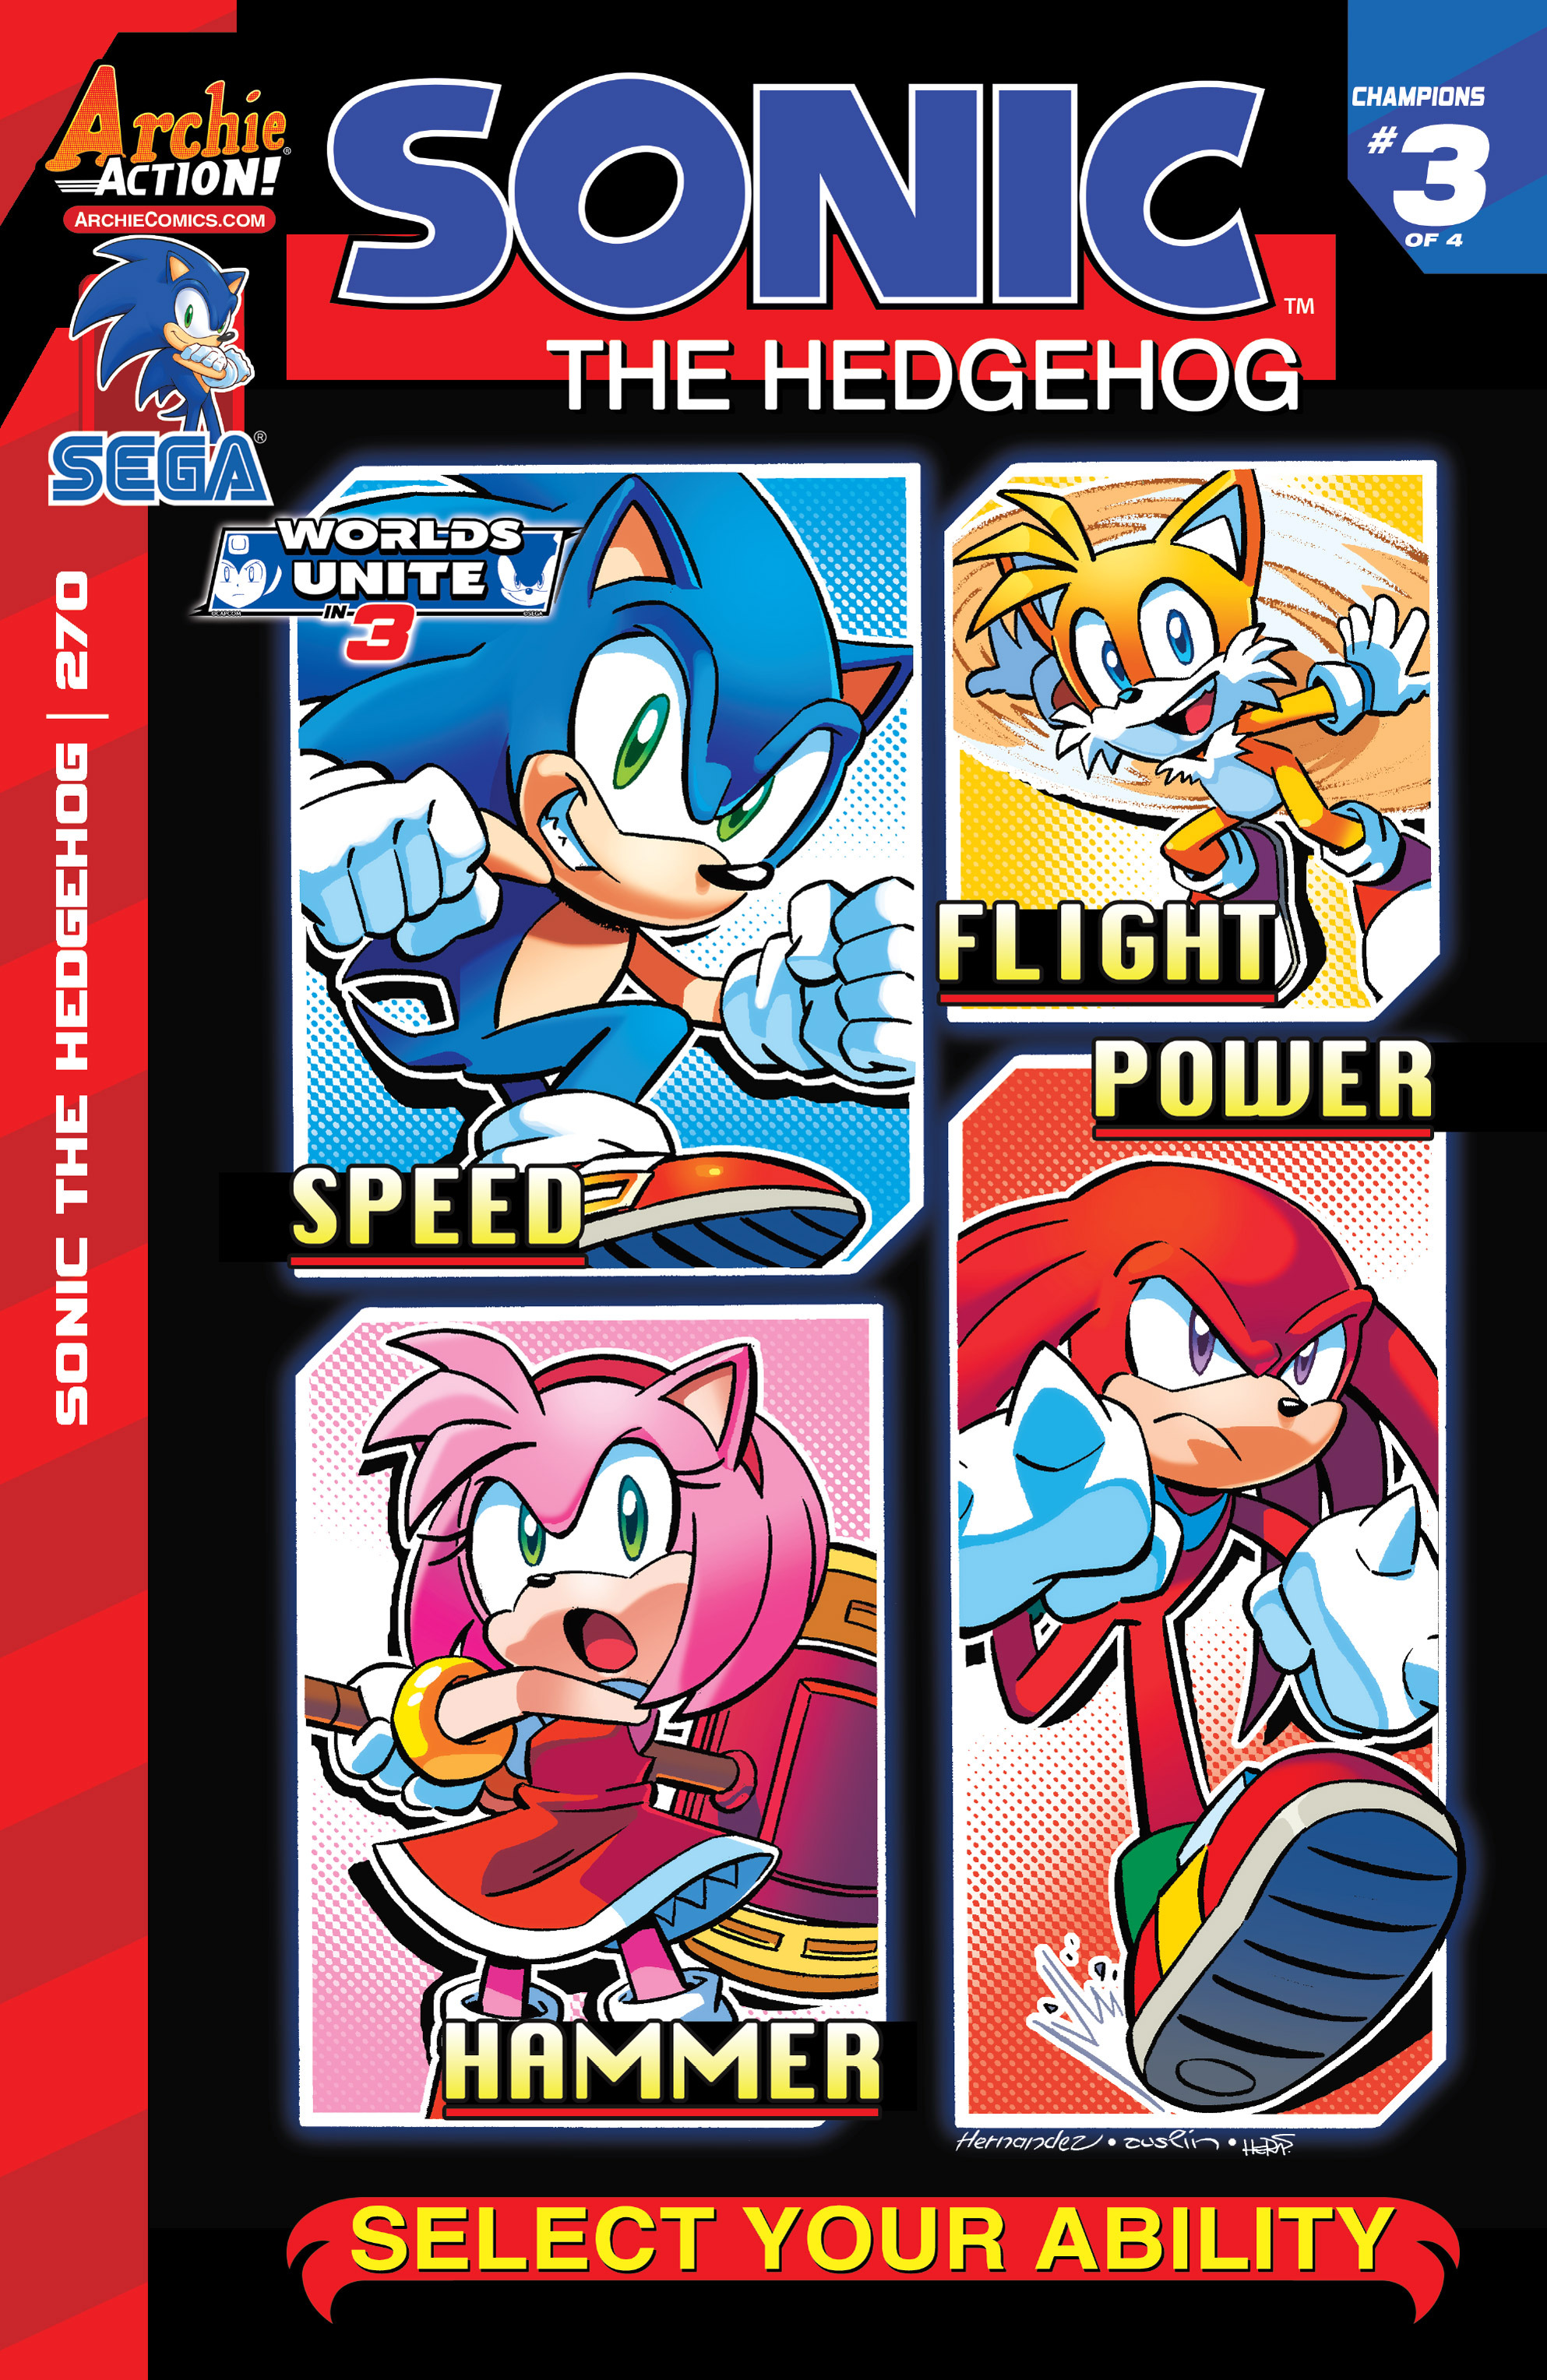 Archie Sonic The Hedgehog Issue 270 Sonic News Network Fandom